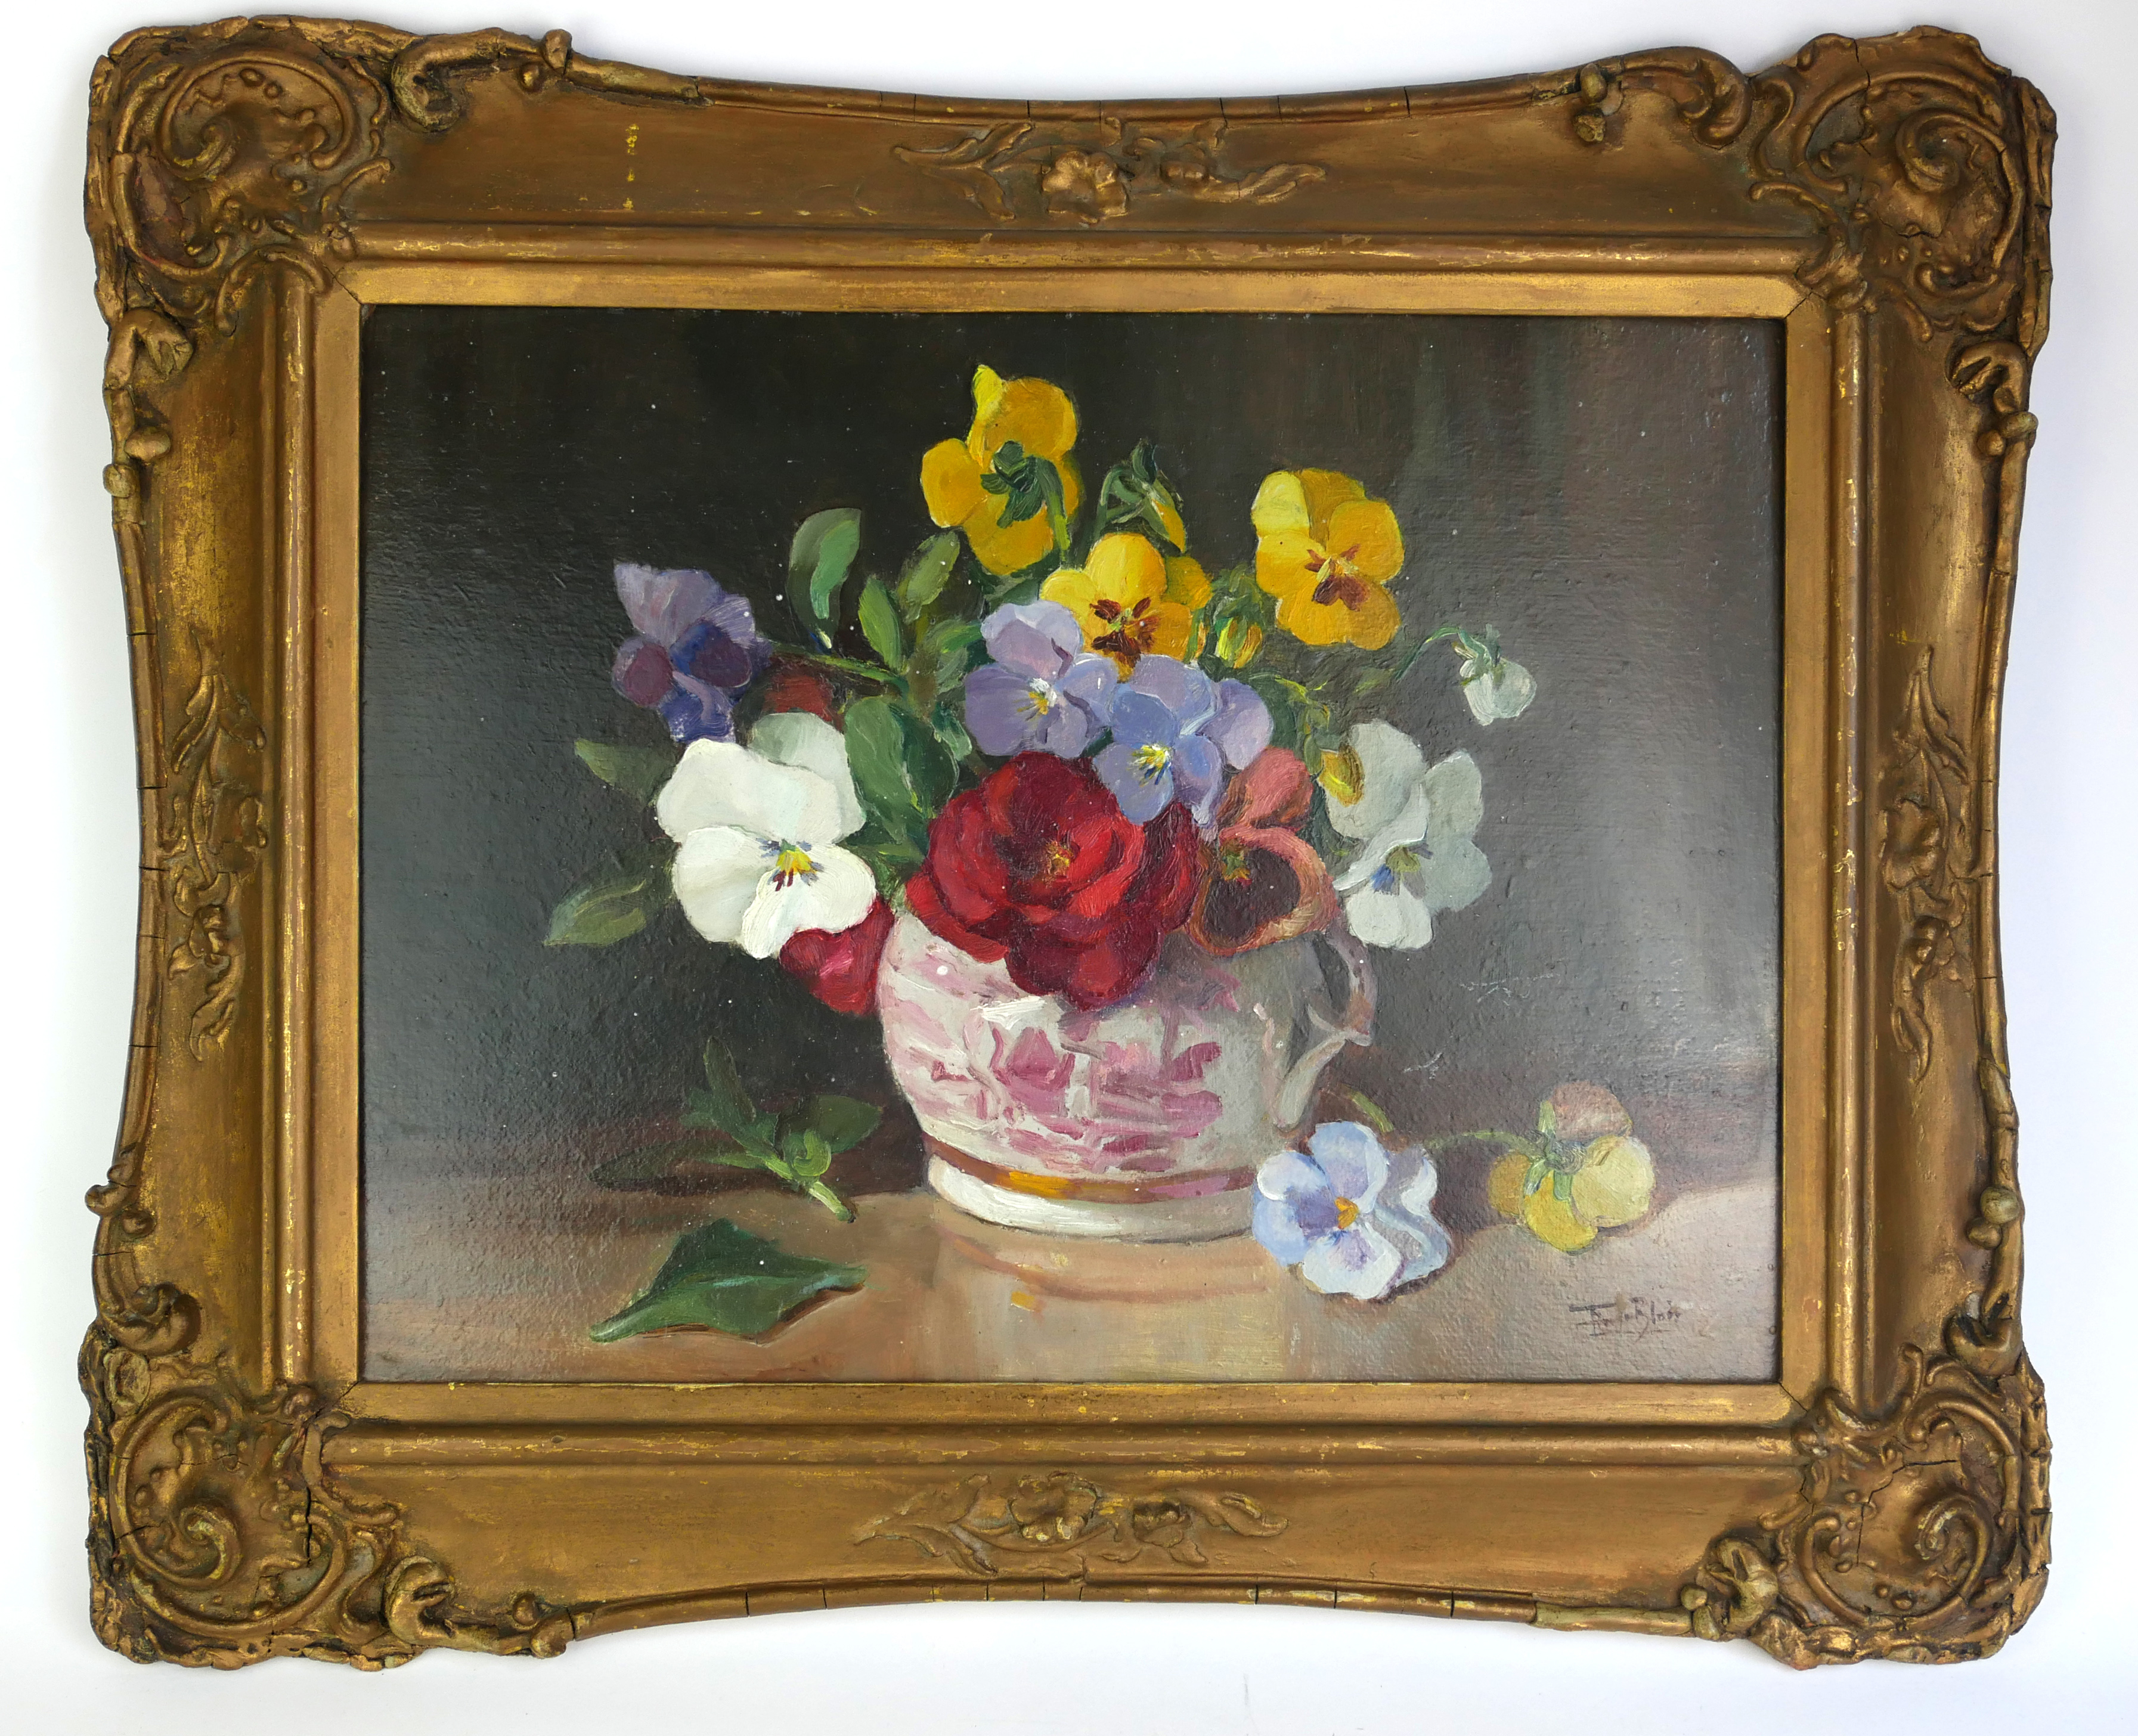 FLAVIA BLOIS (LADY BURNTWOOD), 1914 - 1980, OIL ON BOARD Still life, flowers in a lustre ware jug,